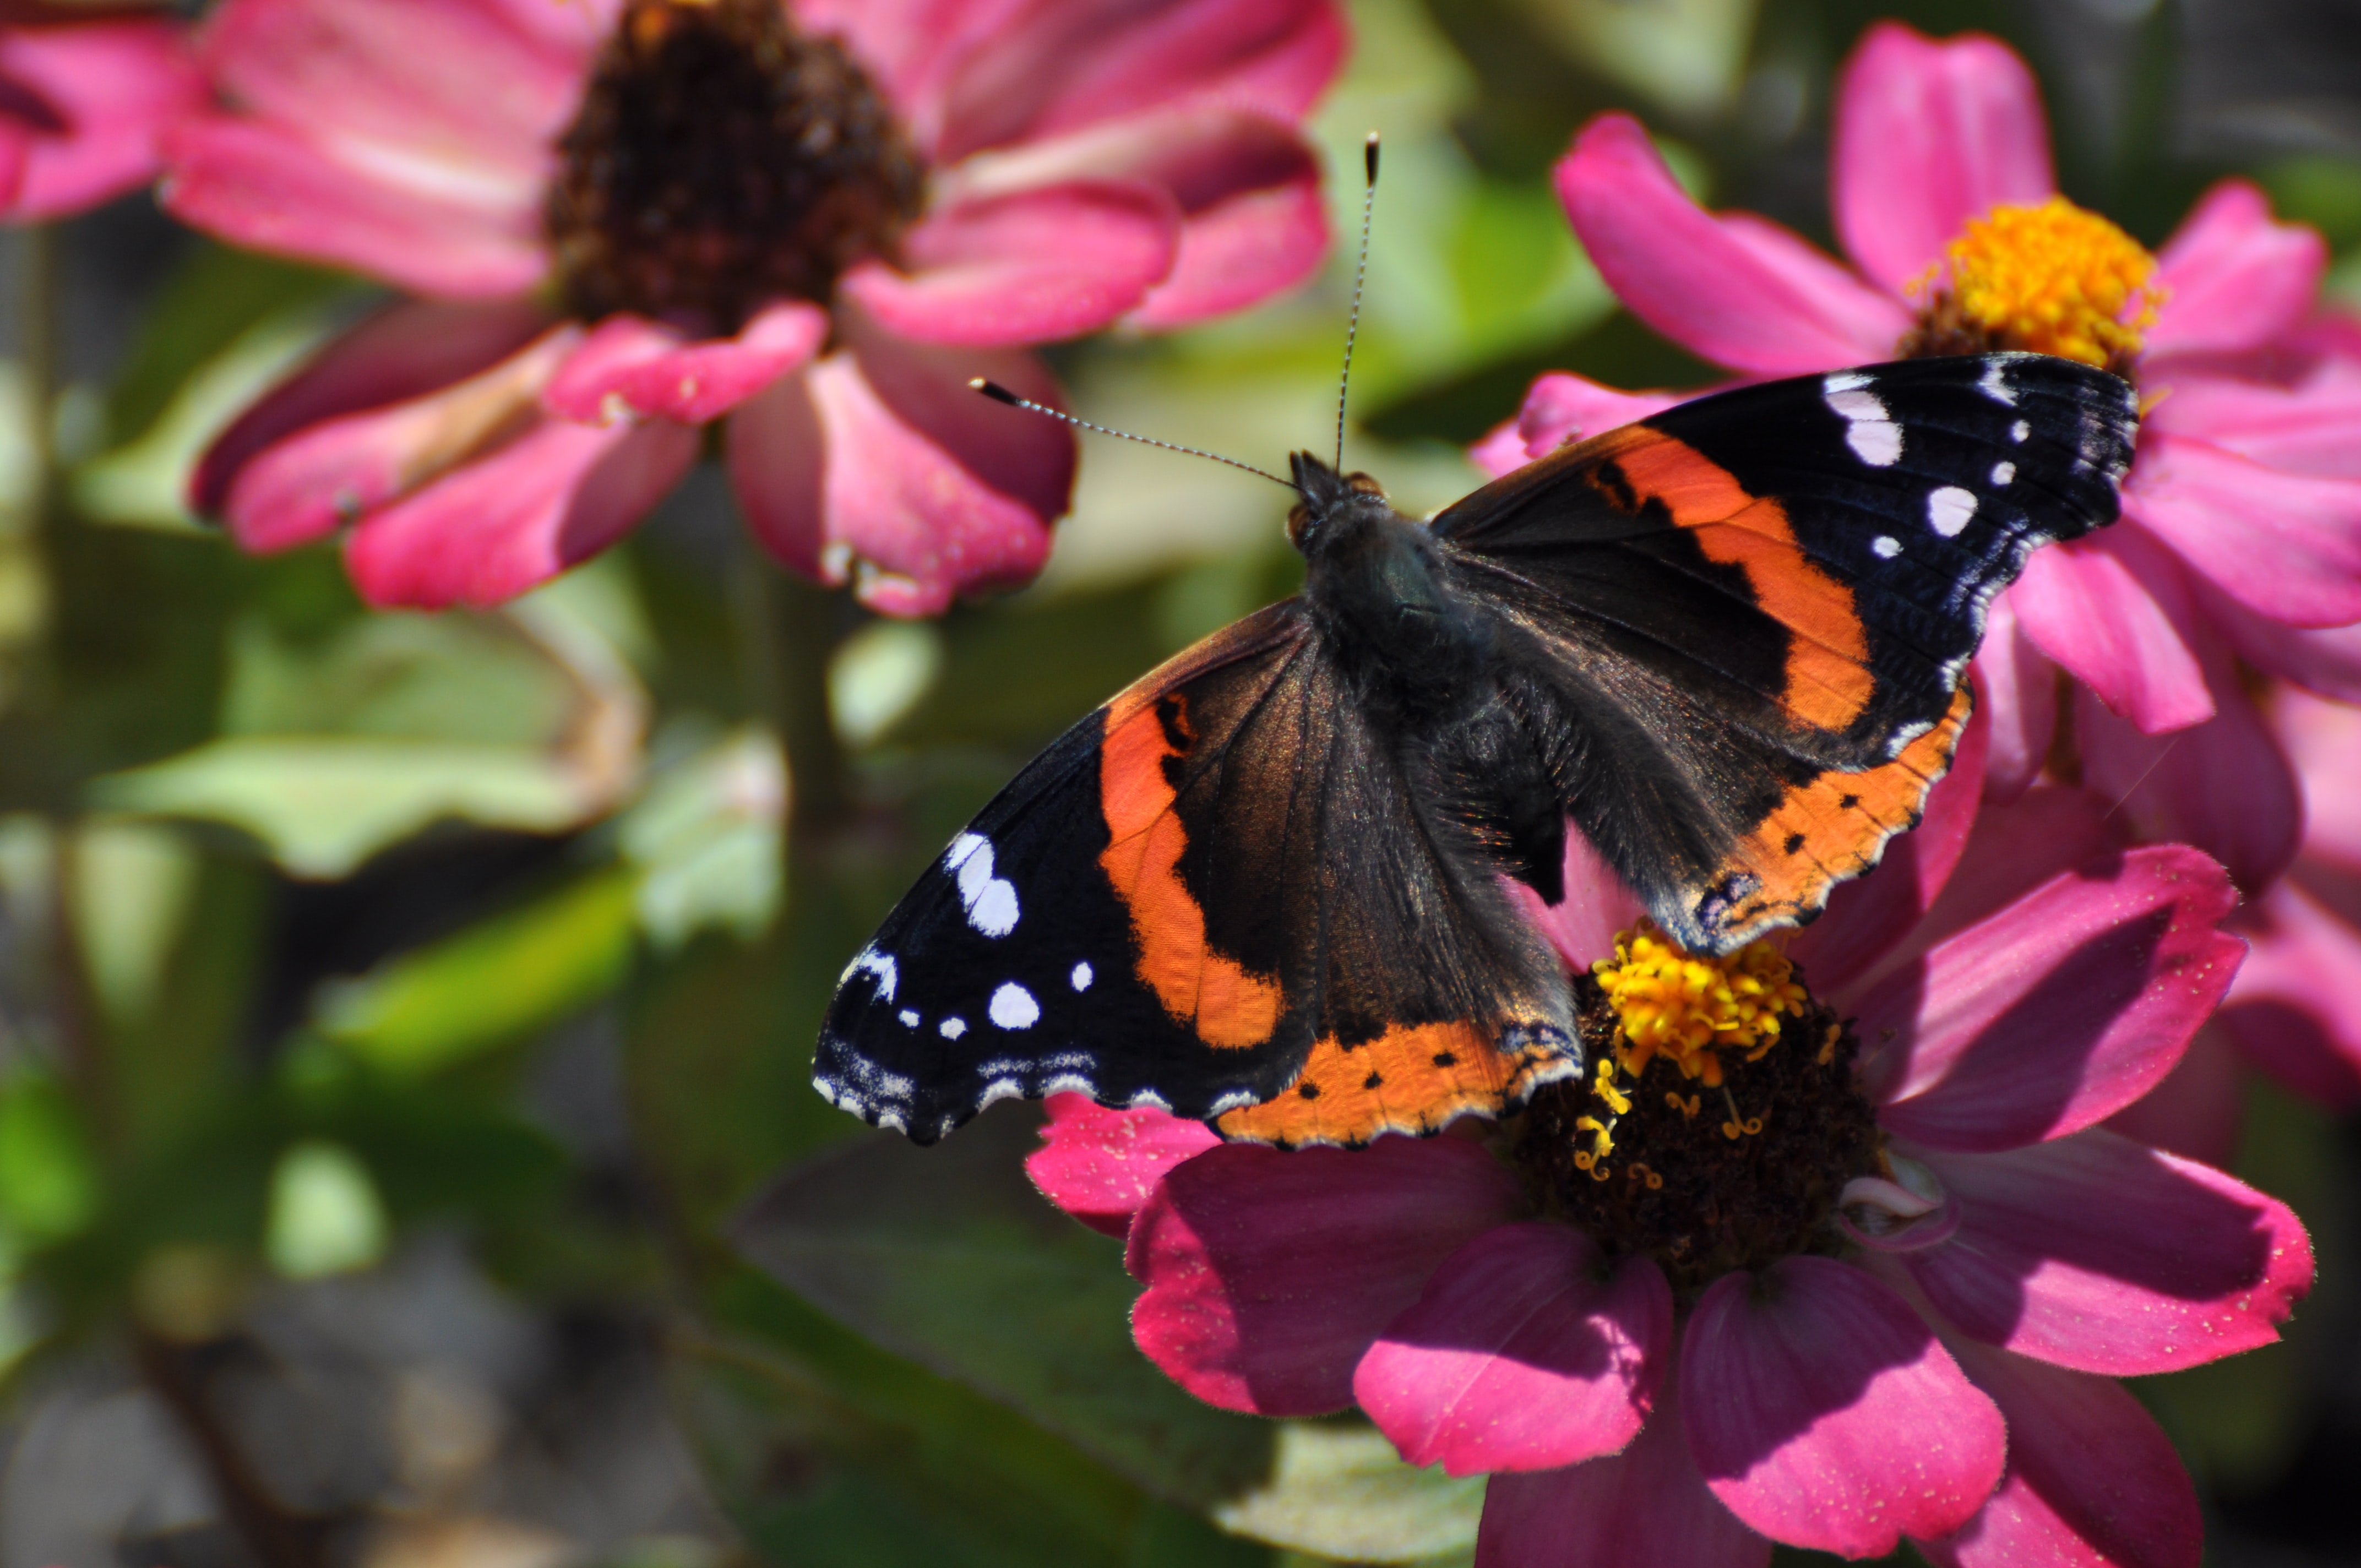 An orange and black butterfly on pink flowers.